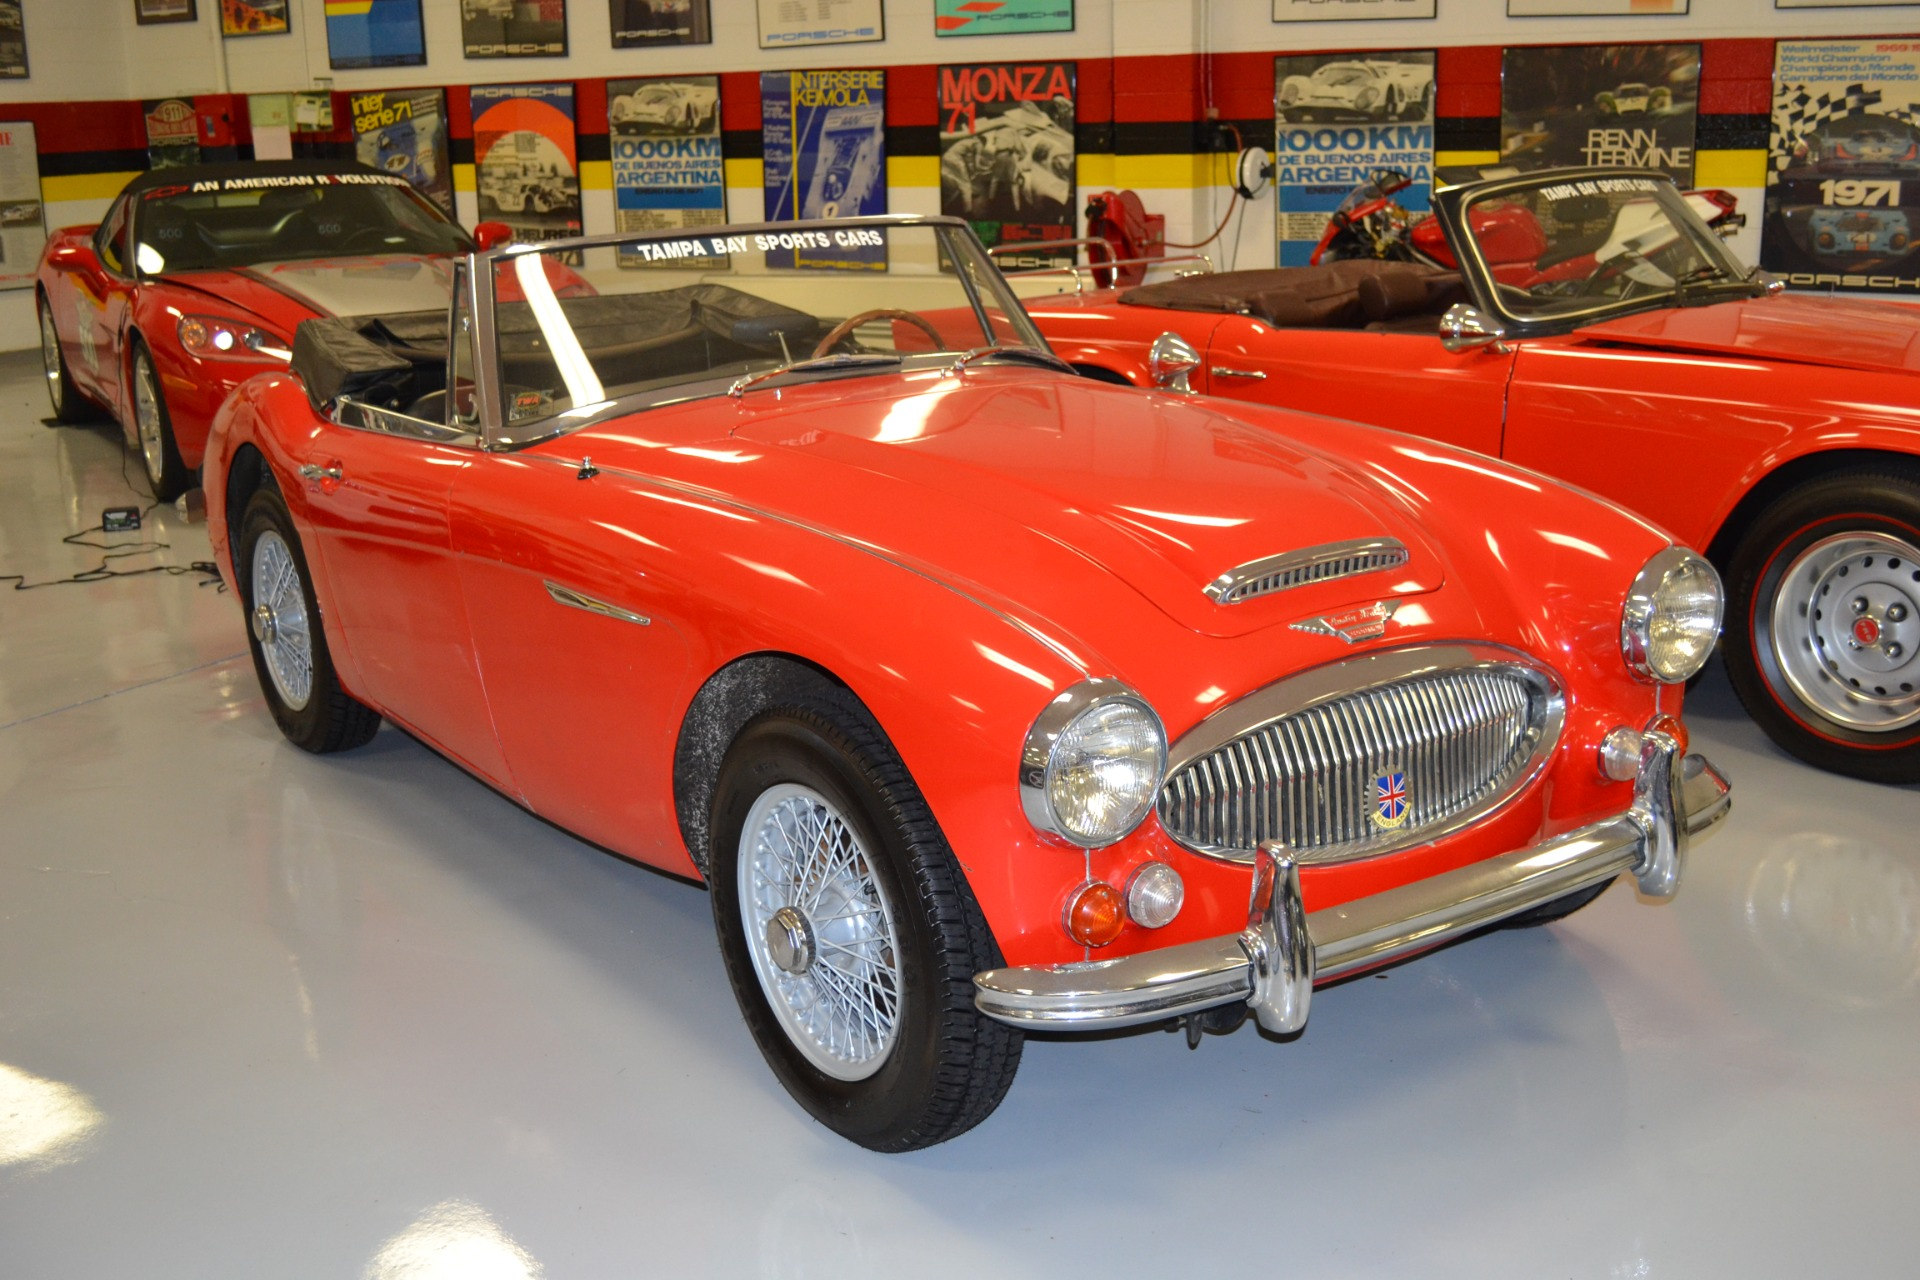 1967 Austin Healey 3000 Convertible For Sale in Pinellas Park FL